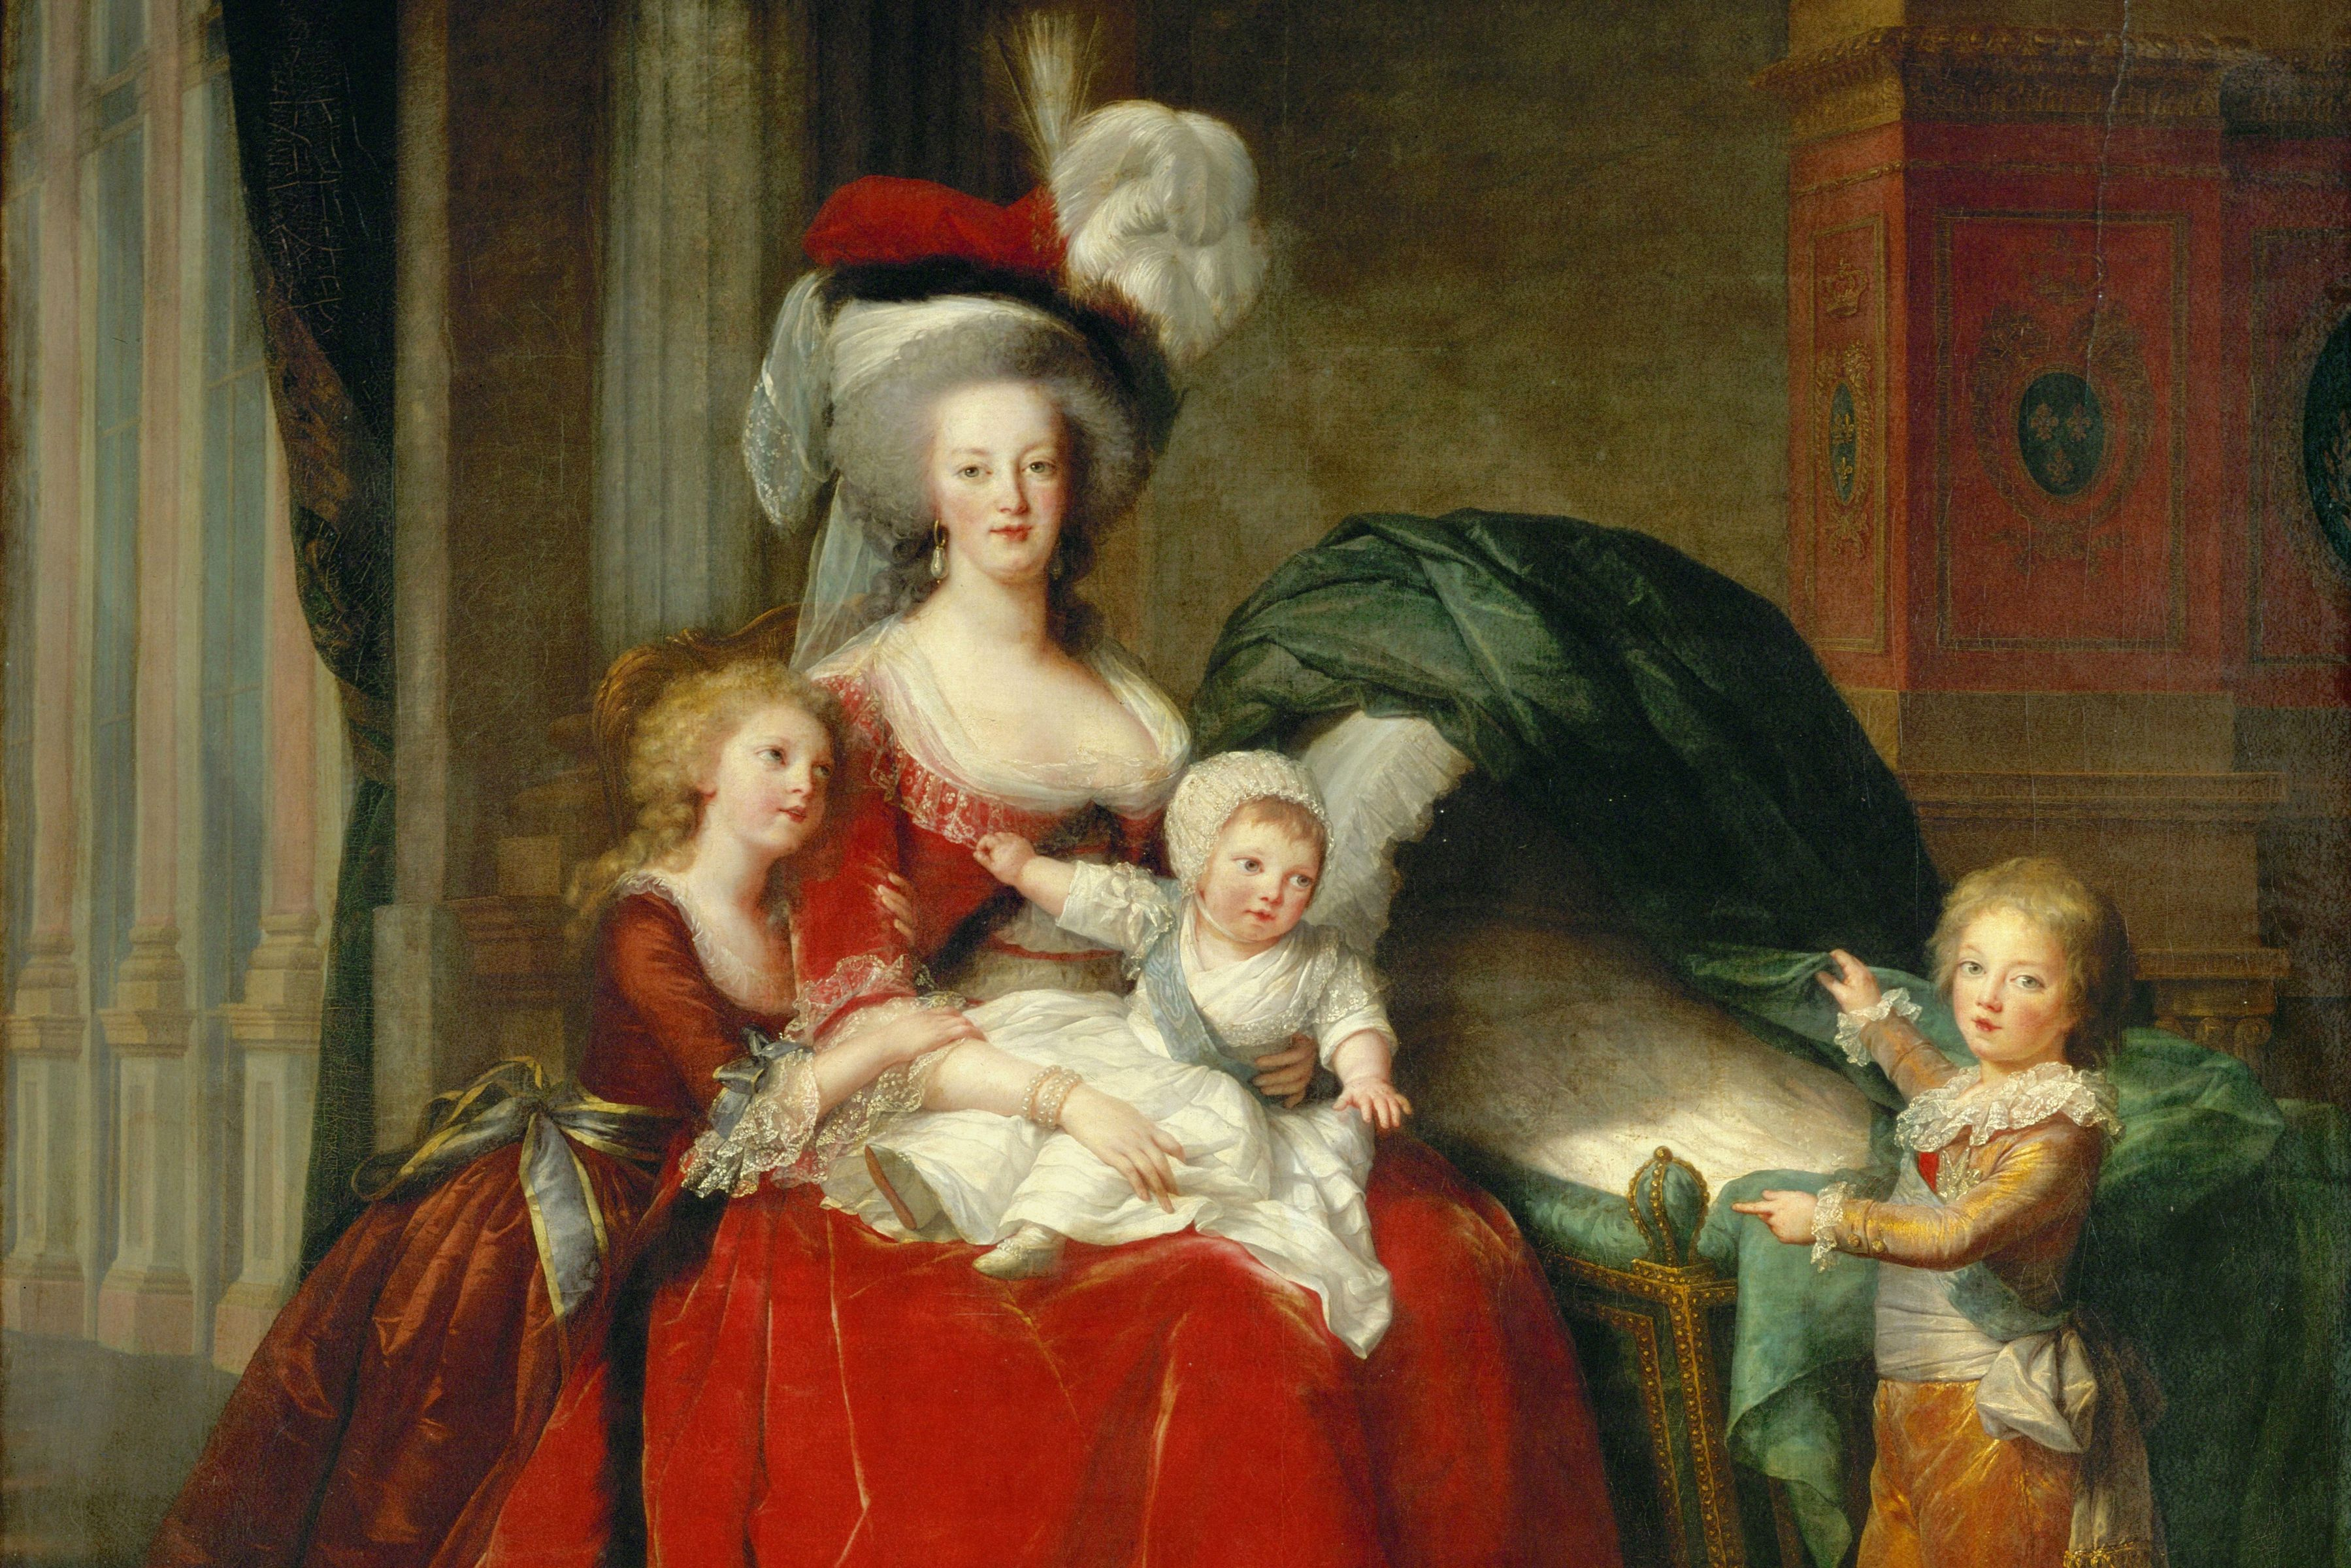 a history of the life and reign of queen marie antoinette during the french revolution European history/revolution in france the weak king louis xvi and the immature queen marie antoinette   during the french revolution.